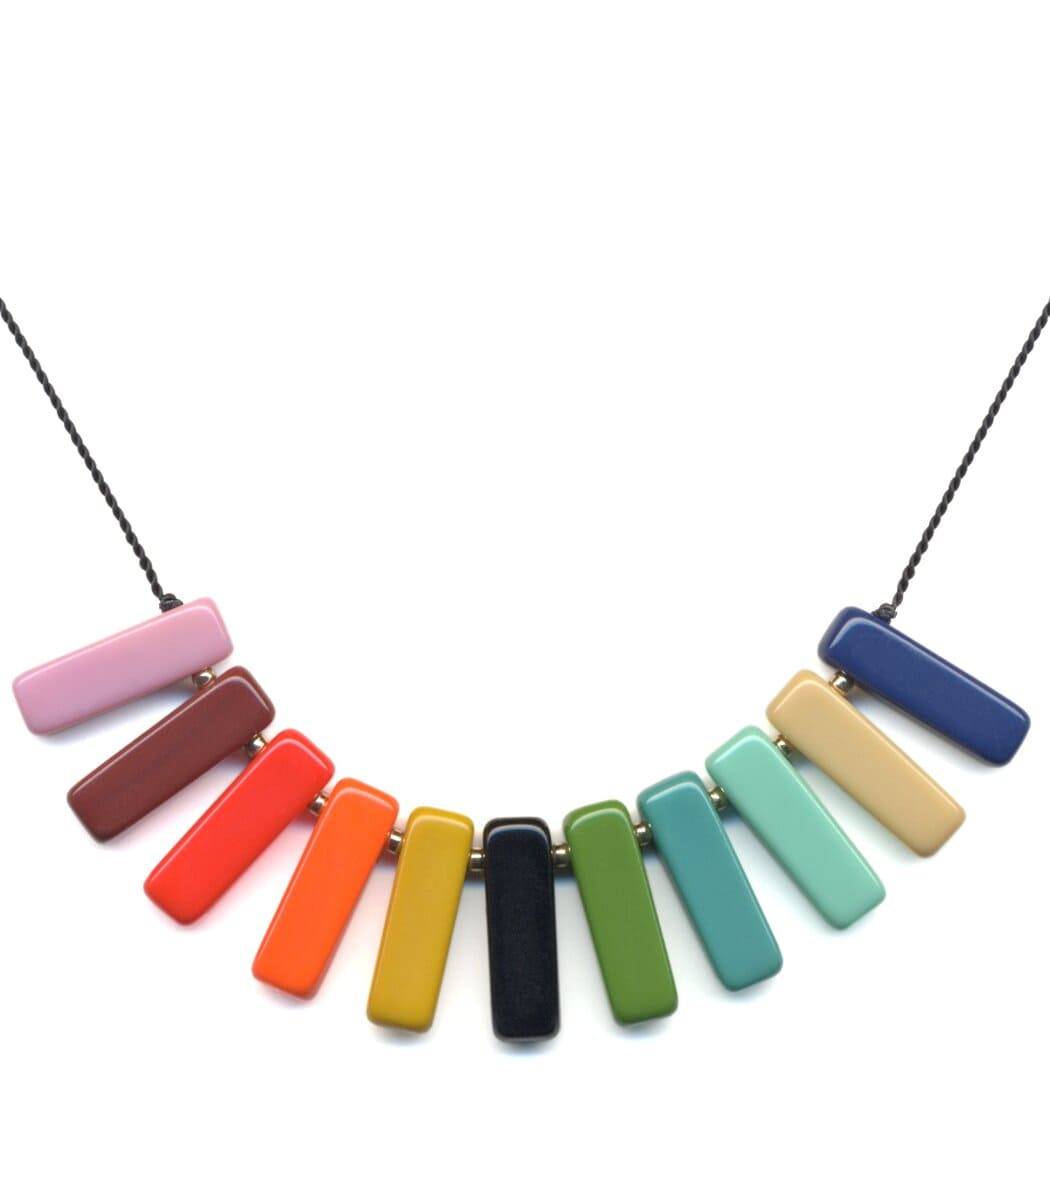 Irk Jewelry I. Ronni Kappos N1840 Spectrum Necklace